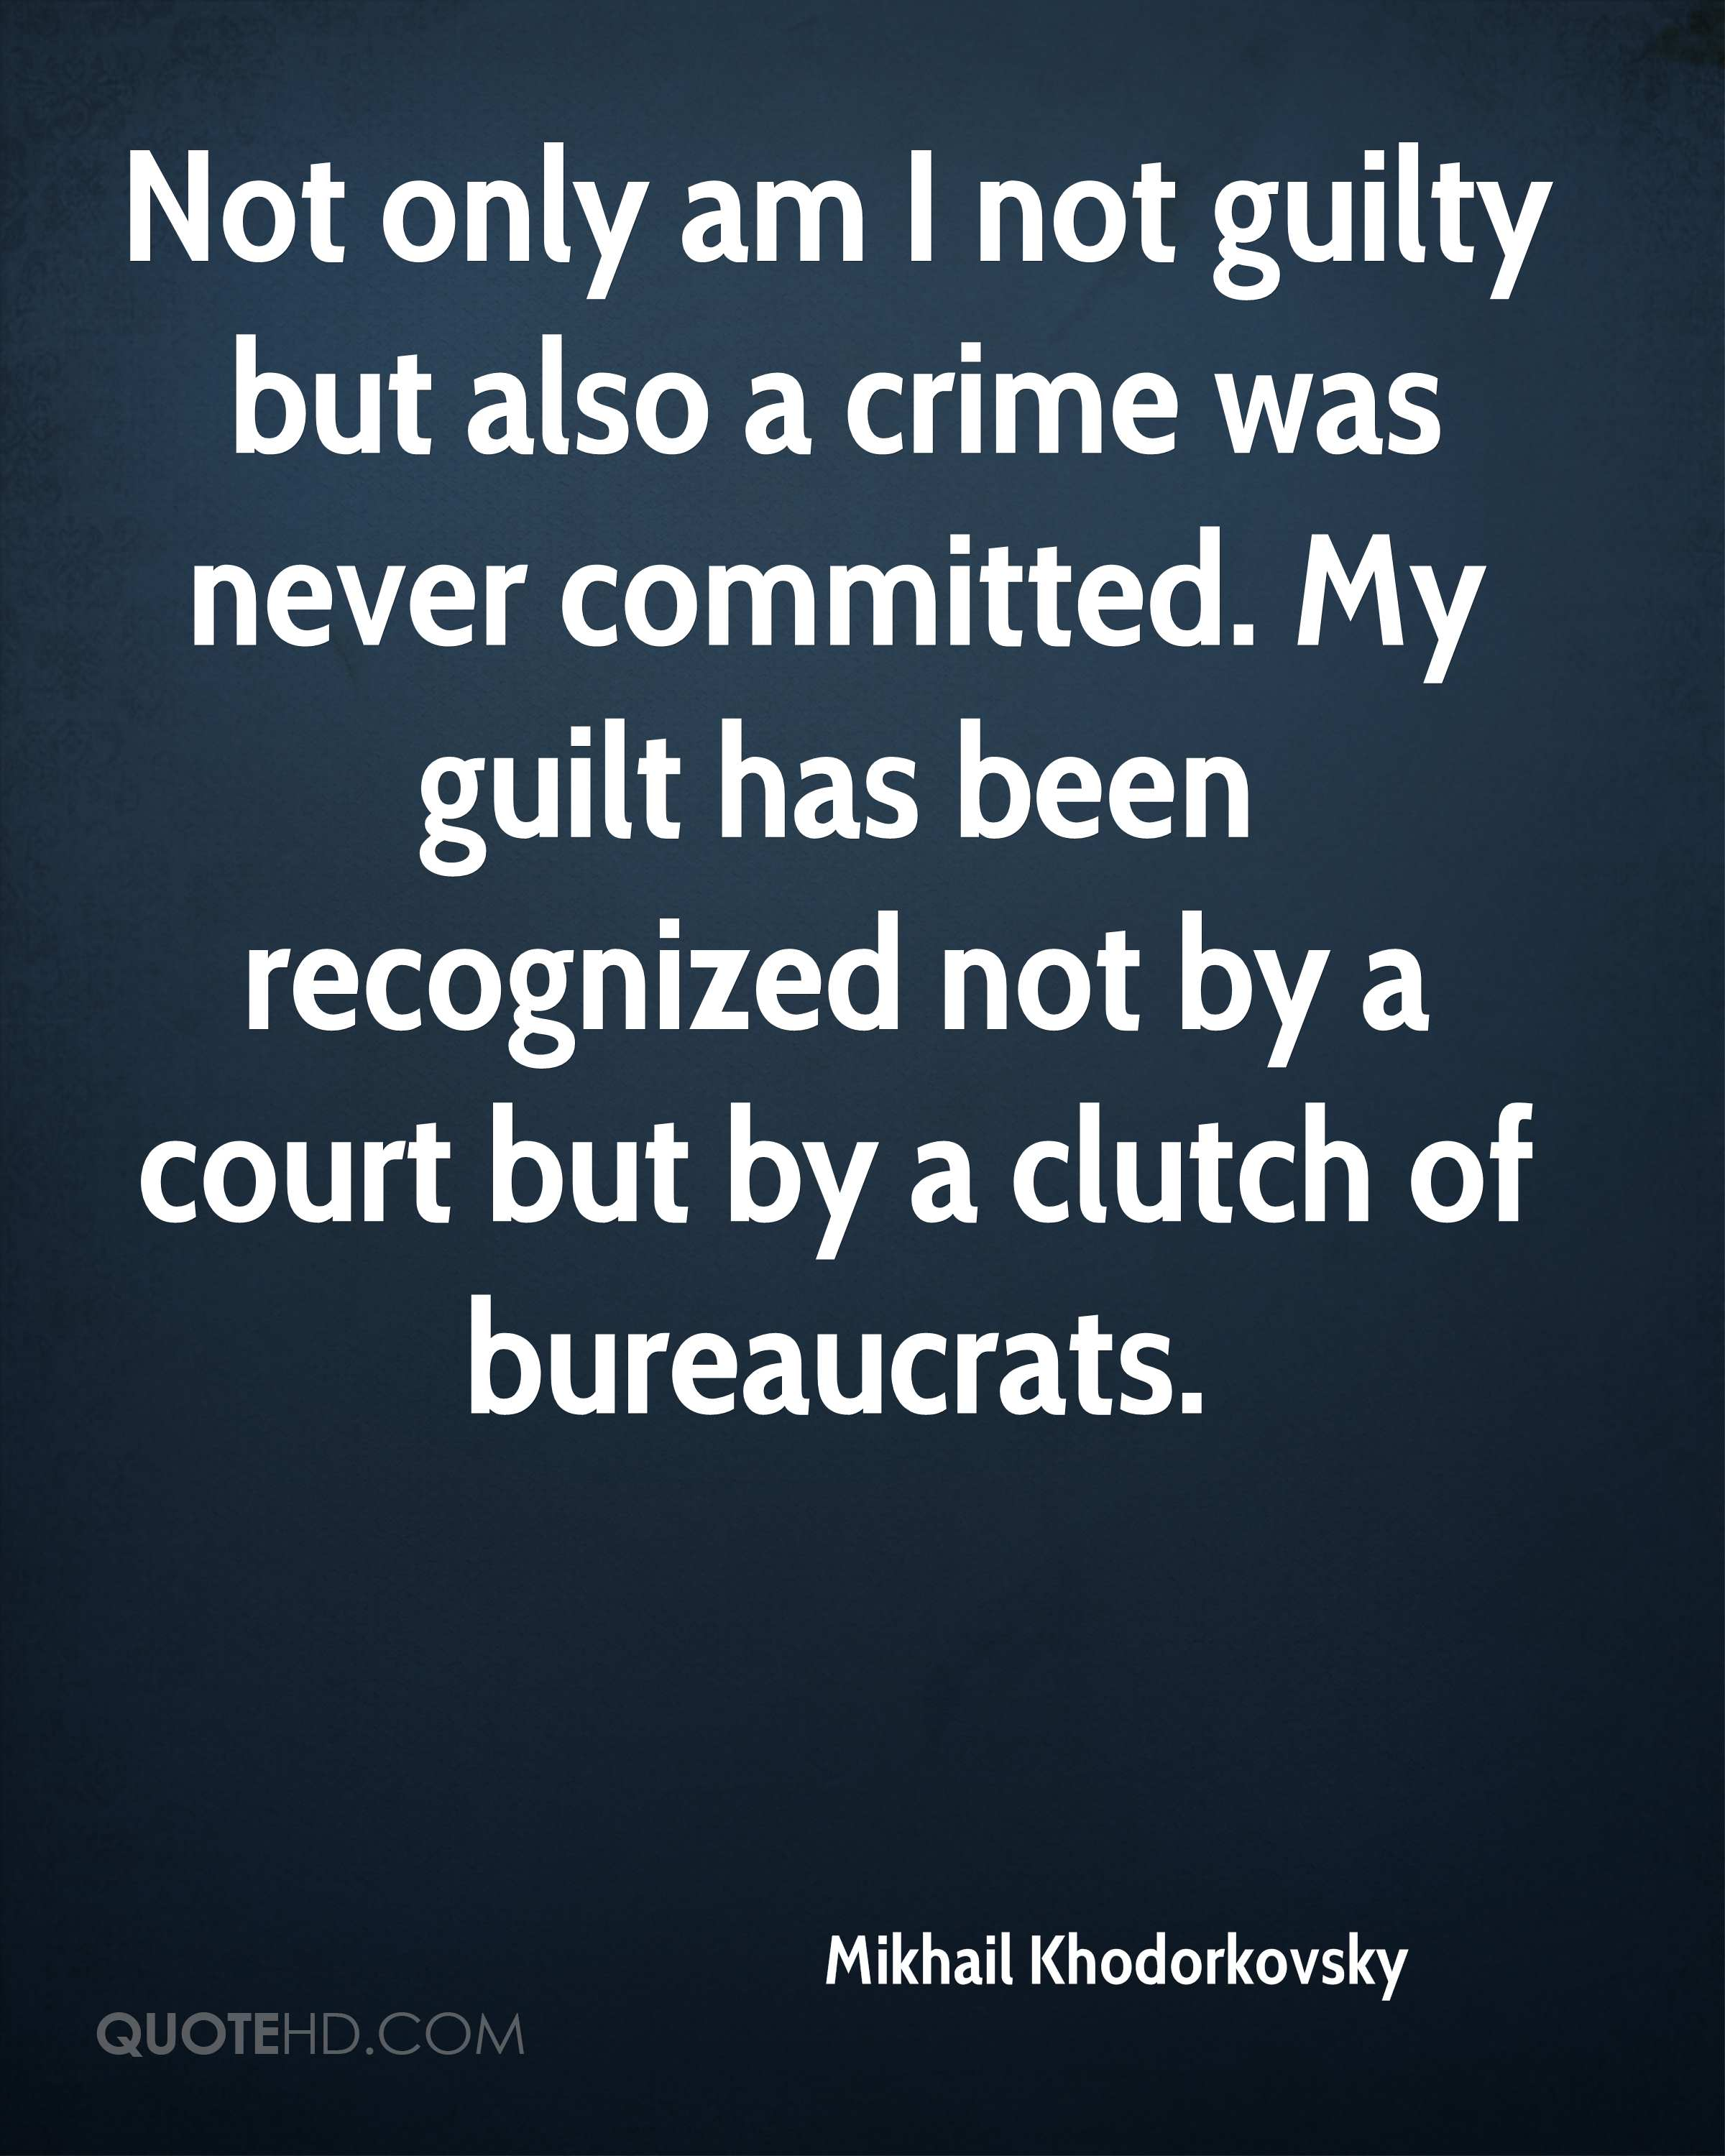 Not only am I not guilty but also a crime was never committed. My guilt has been recognized not by a court but by a clutch of bureaucrats.